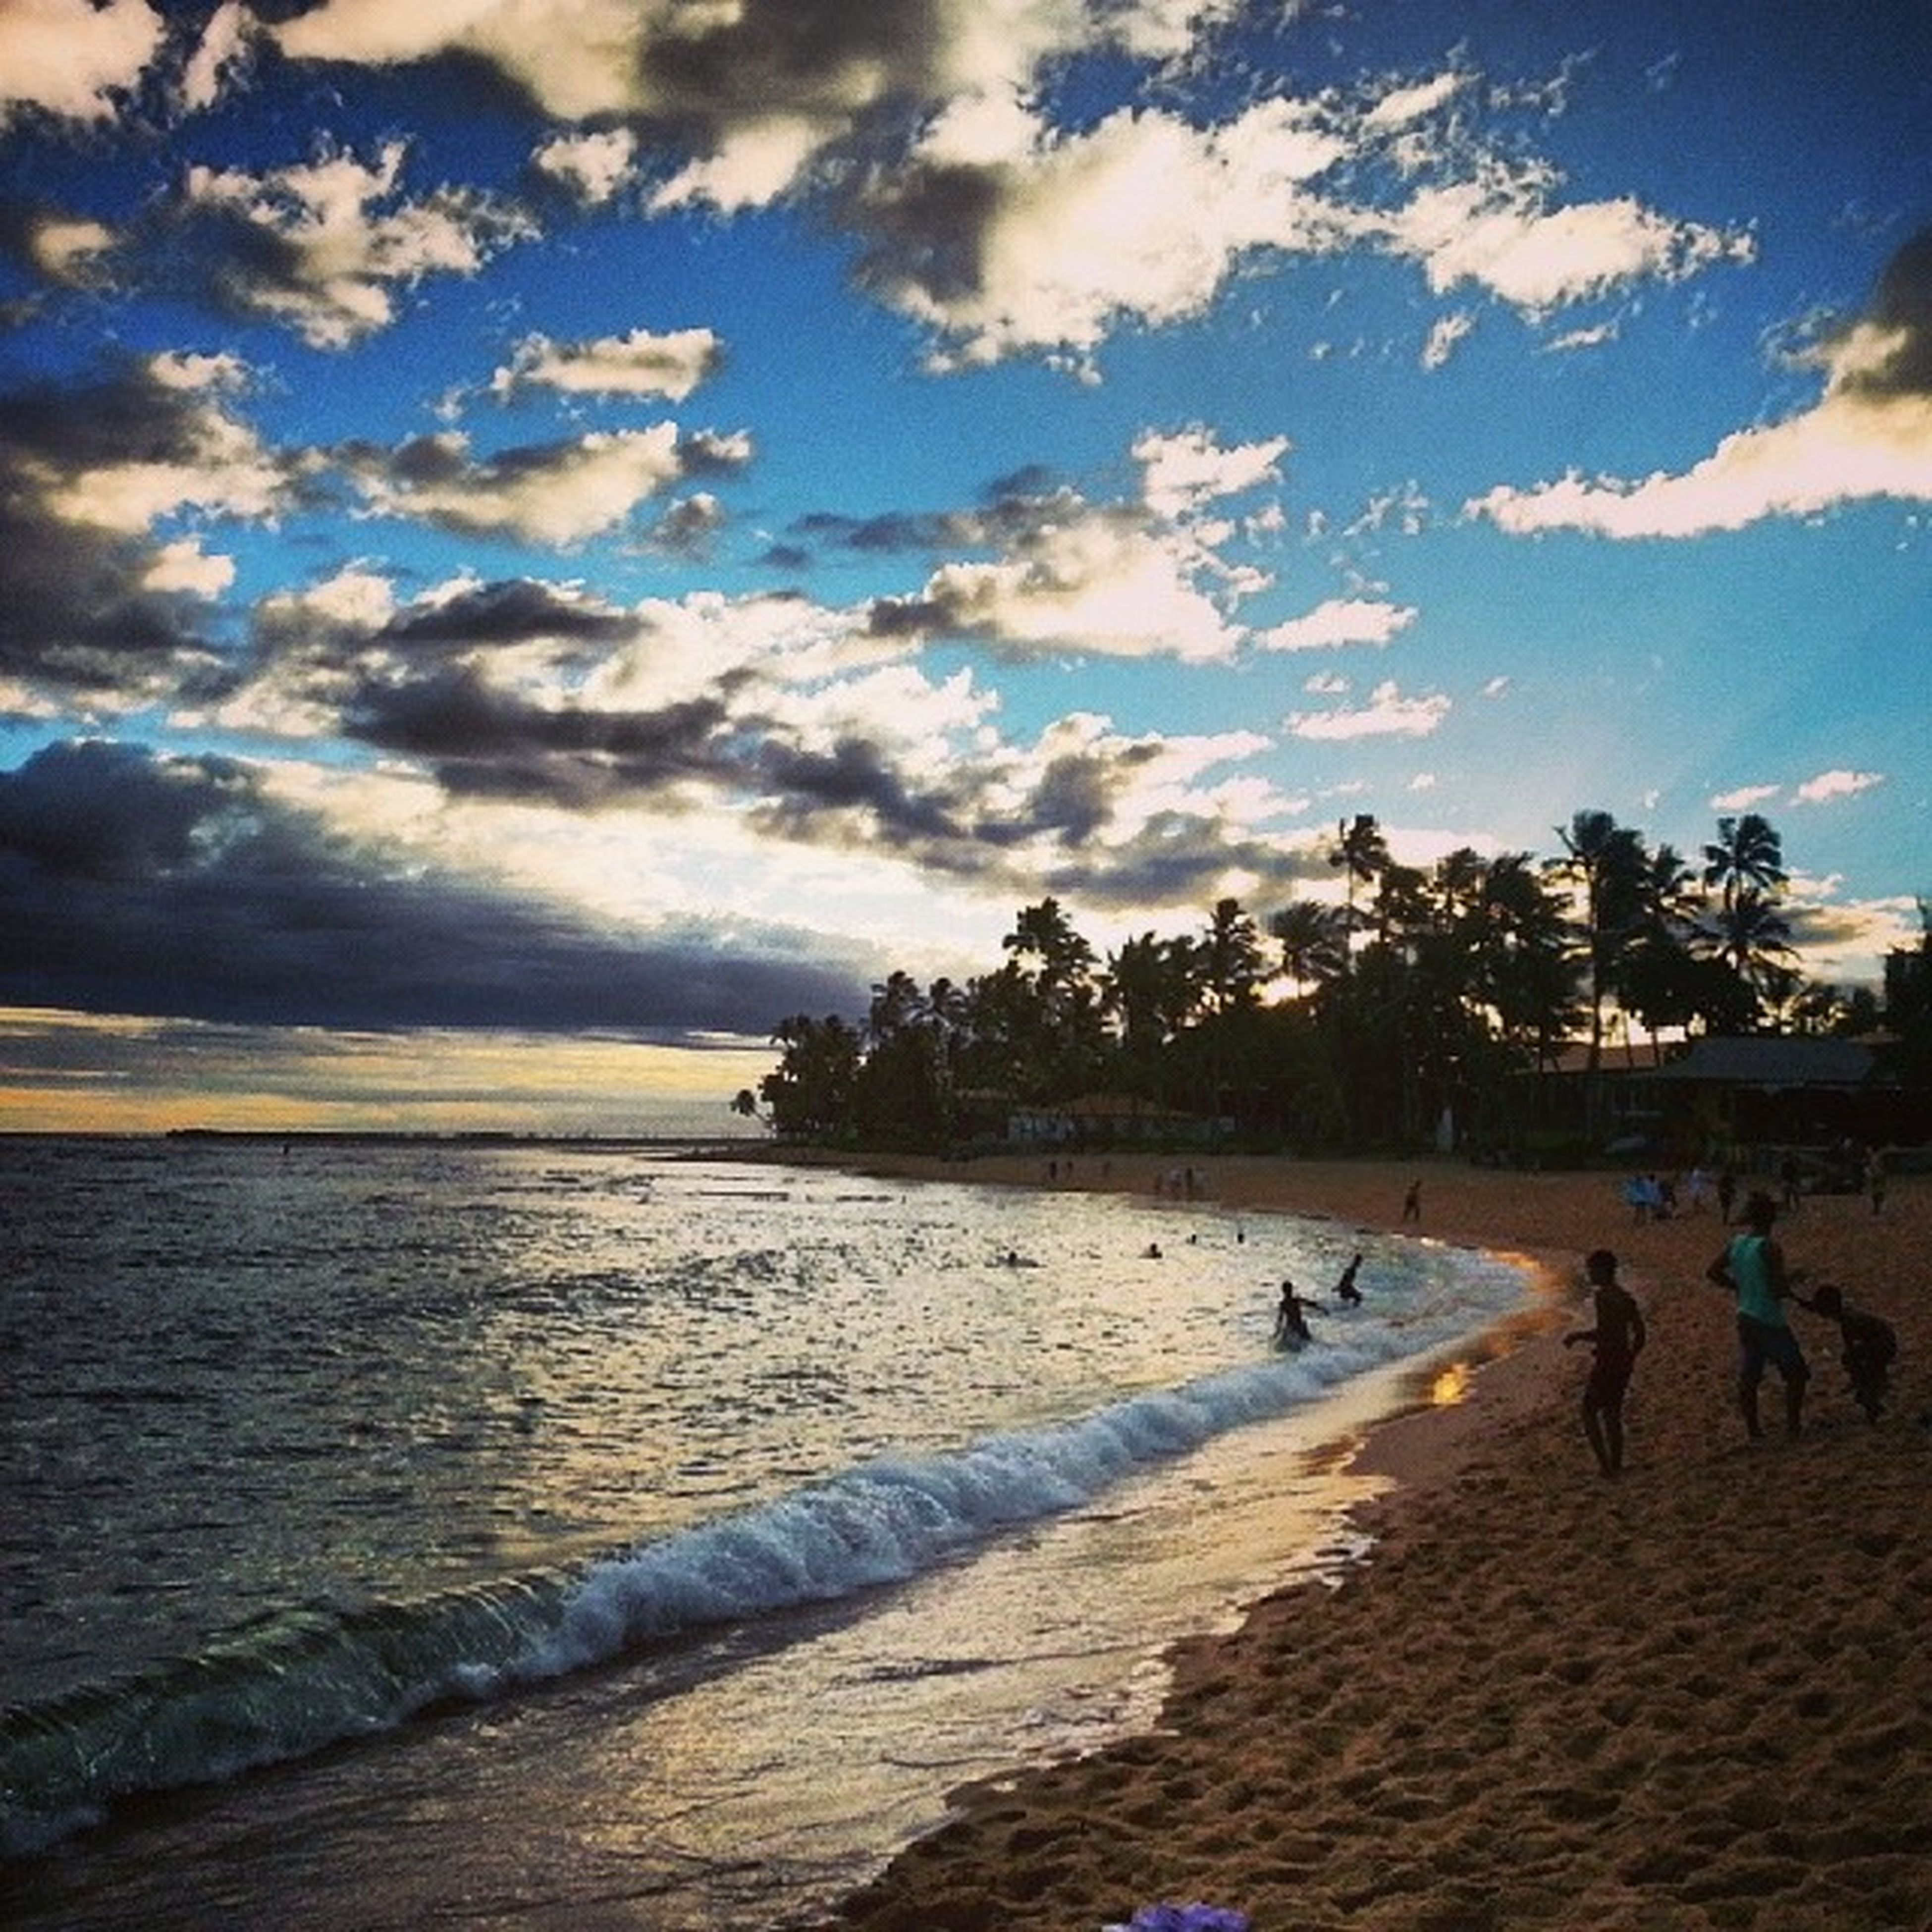 beach, water, sky, sea, sand, shore, cloud - sky, scenics, tranquil scene, tranquility, beauty in nature, nature, cloud, incidental people, vacations, coastline, horizon over water, sunset, leisure activity